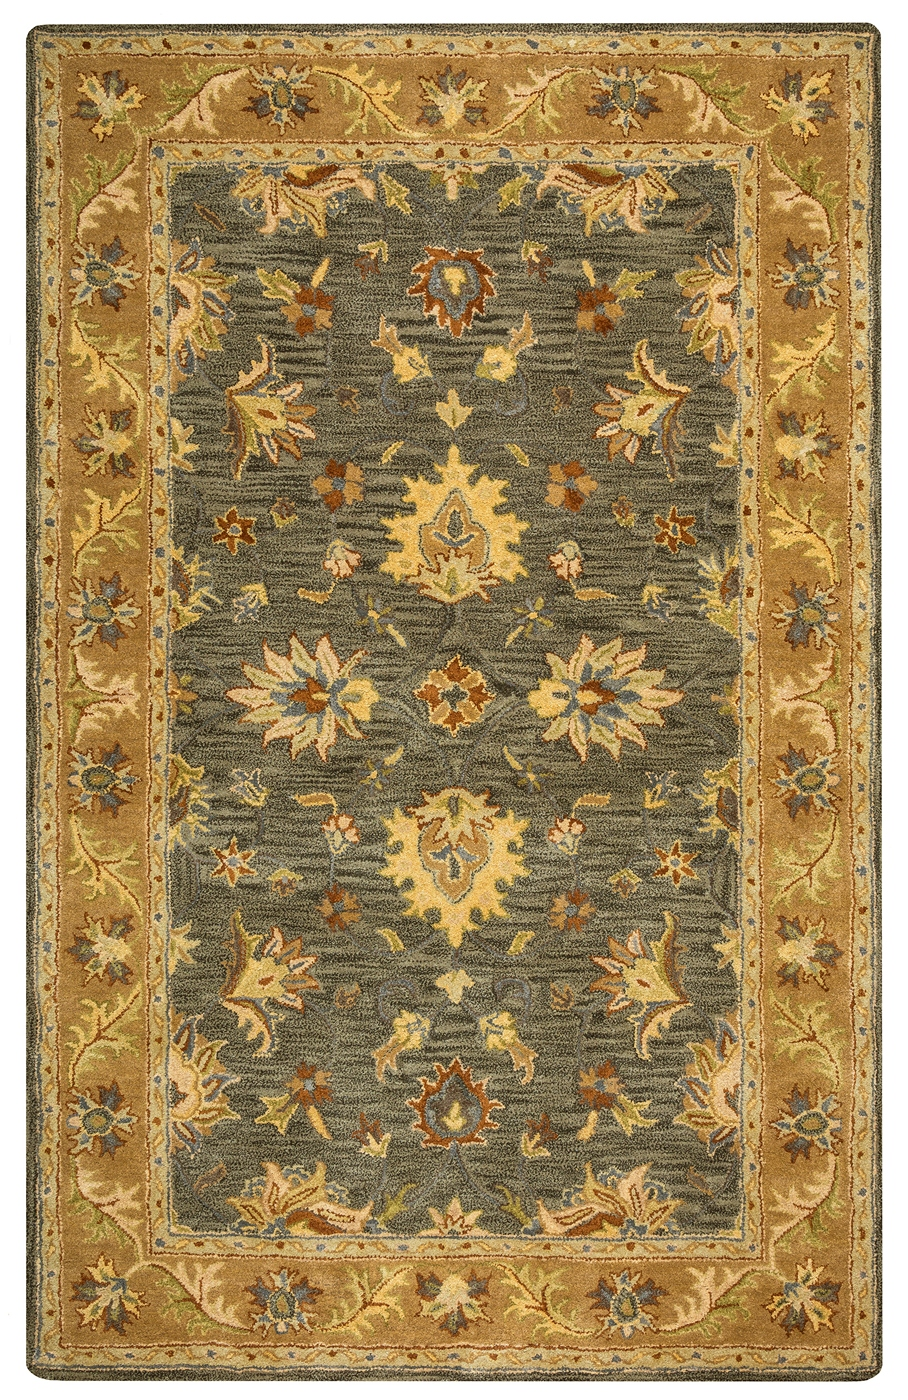 Valintino Bordered Vine Floral Wool Area Rug In Ivory